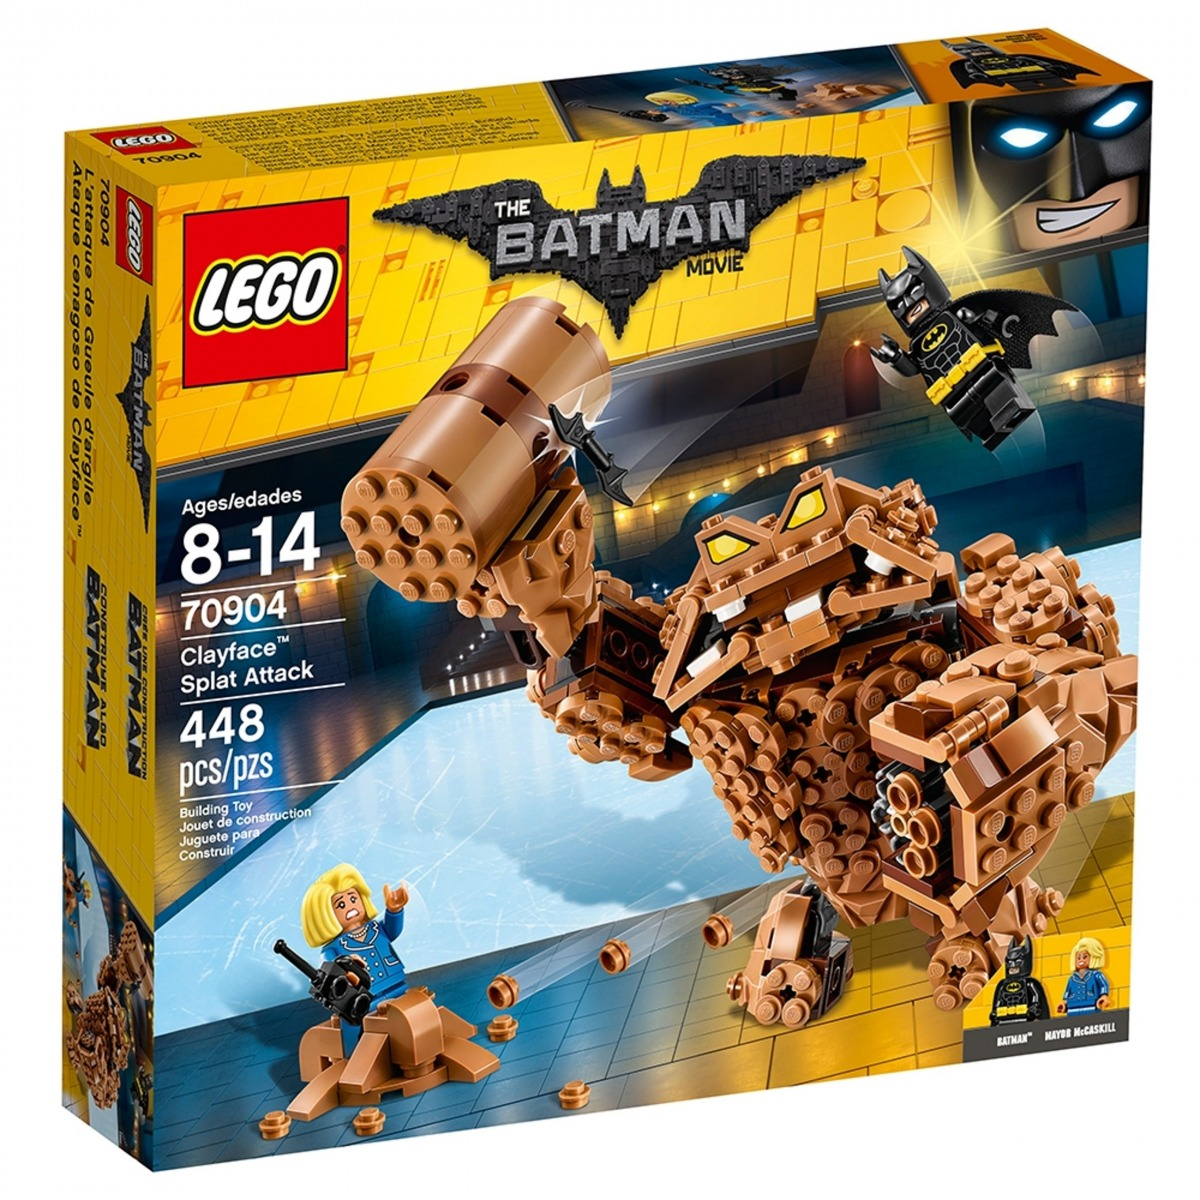 lego 70904 clayface splat attack scaled